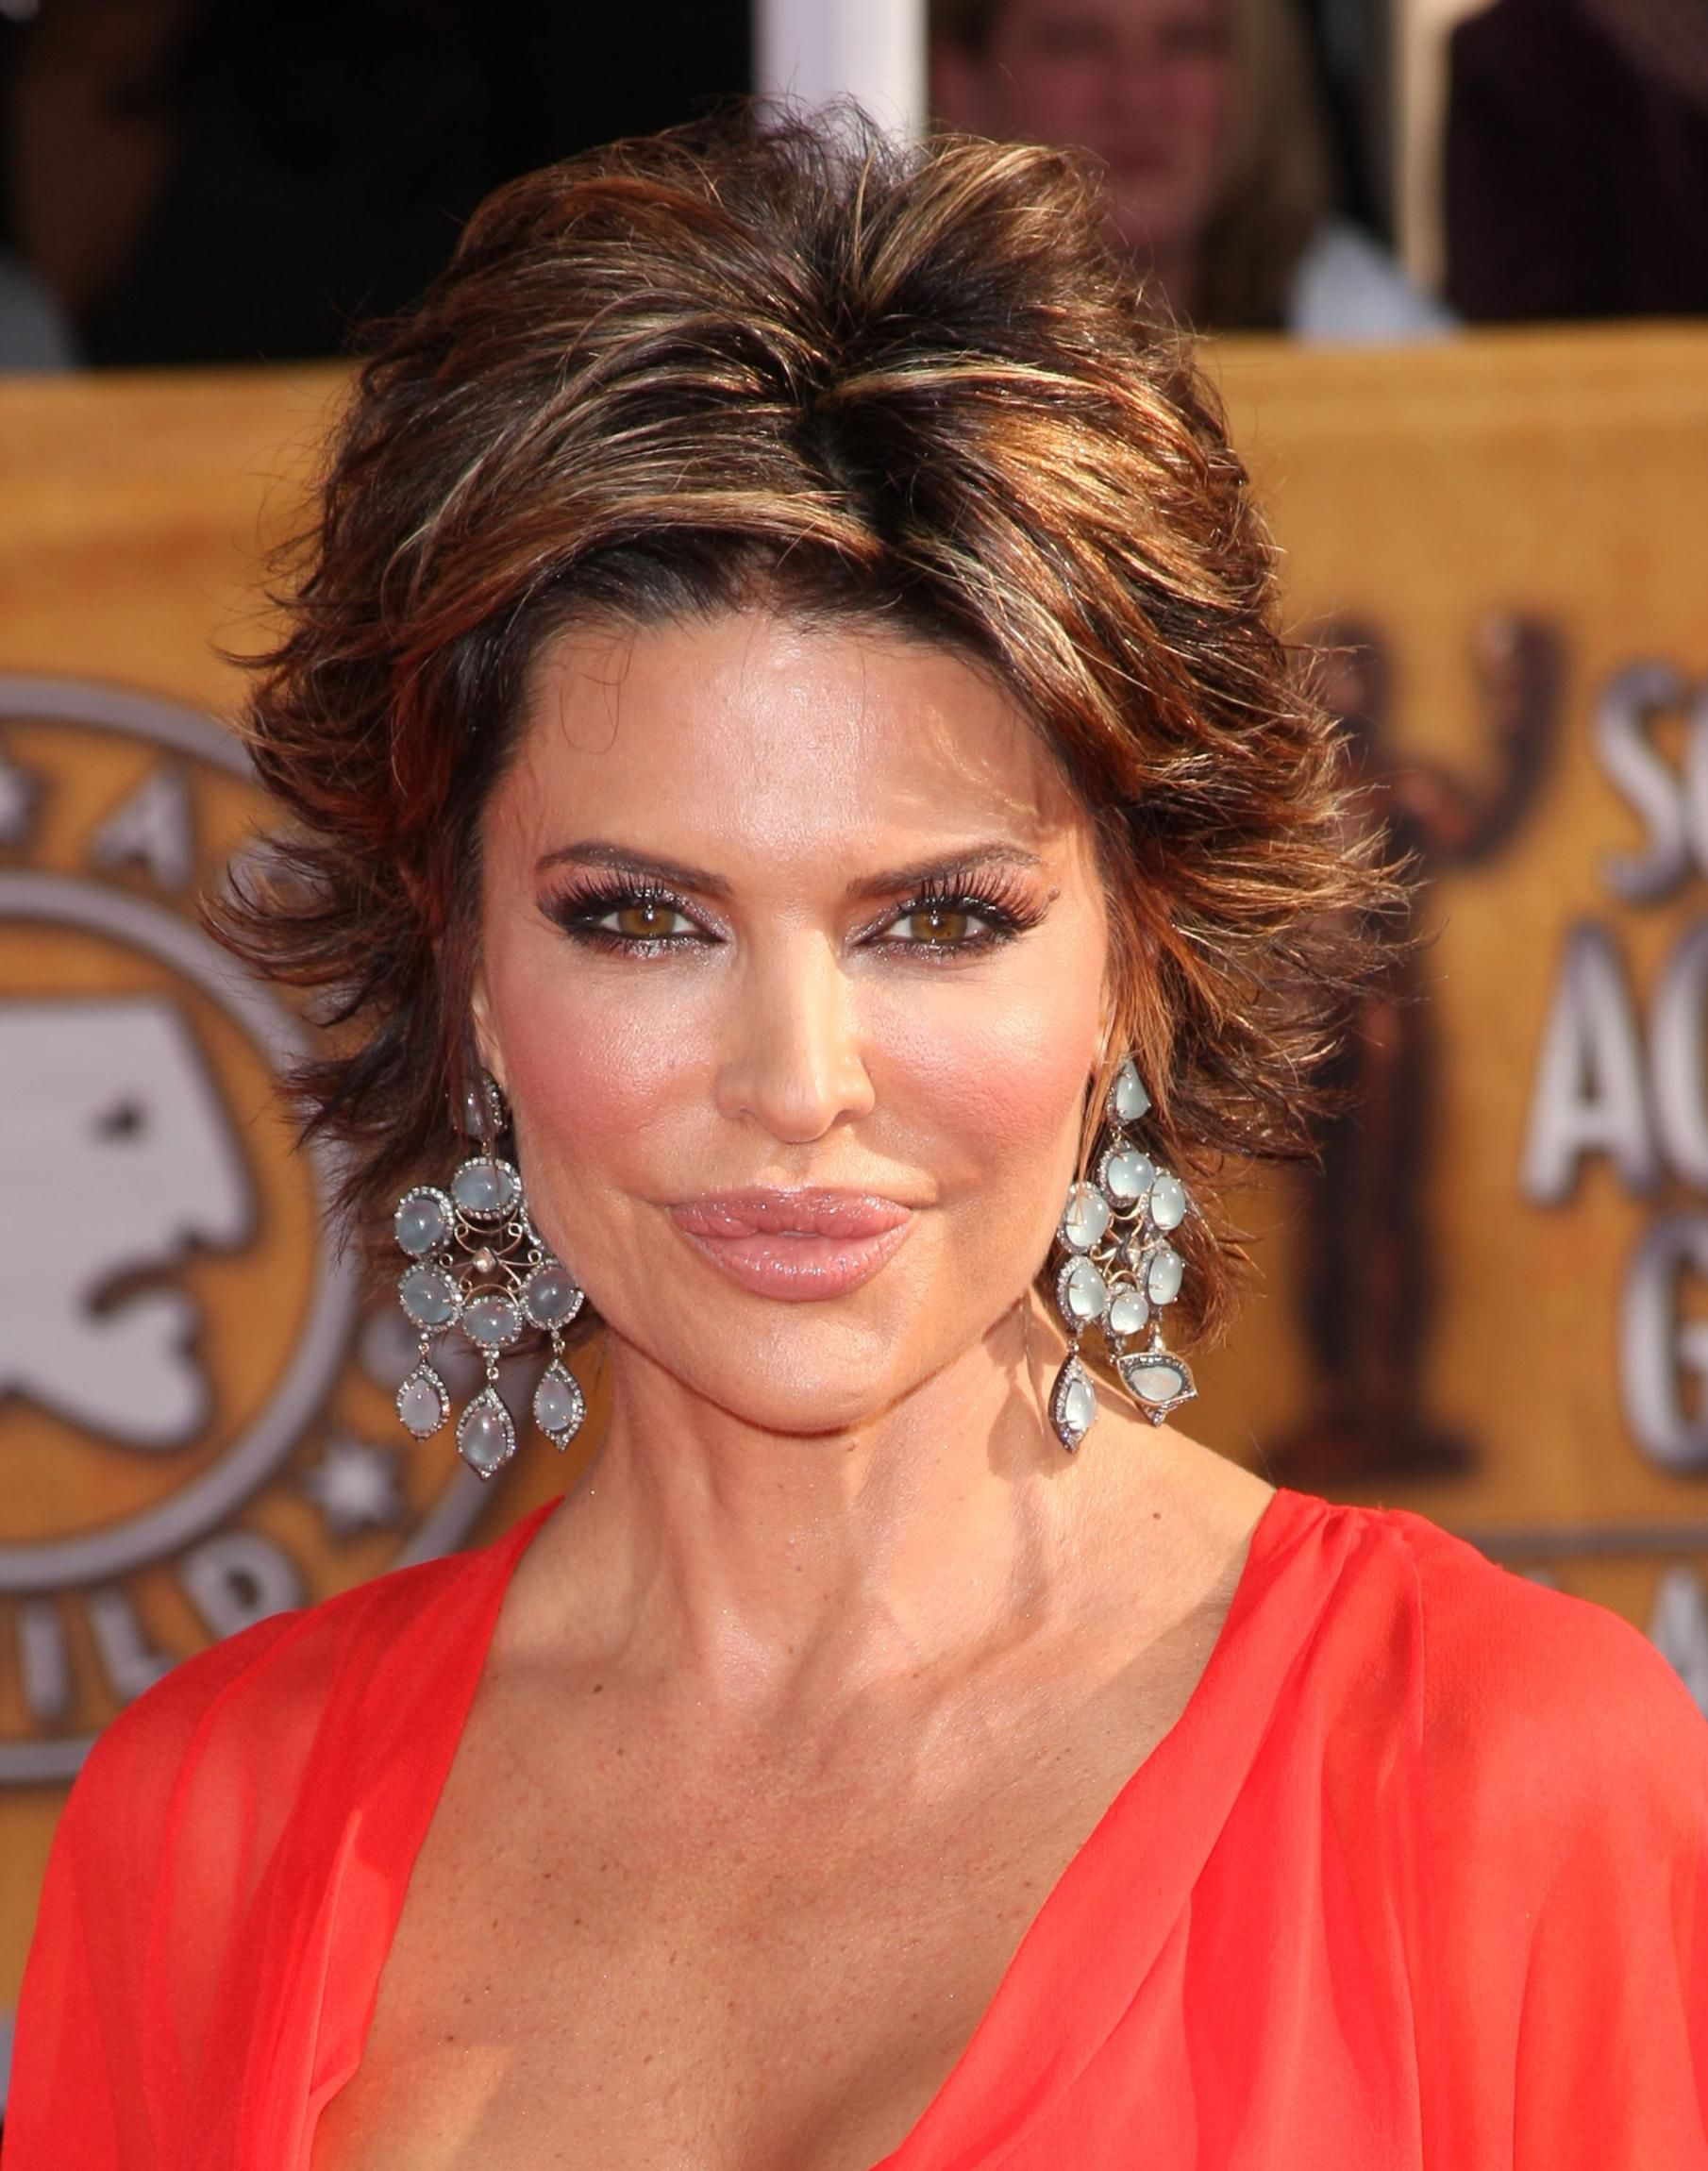 Lisa Rinna Hairstyles 30 Spectacular Lisa Rinna Hairstyles Hairstyles Pictures Need